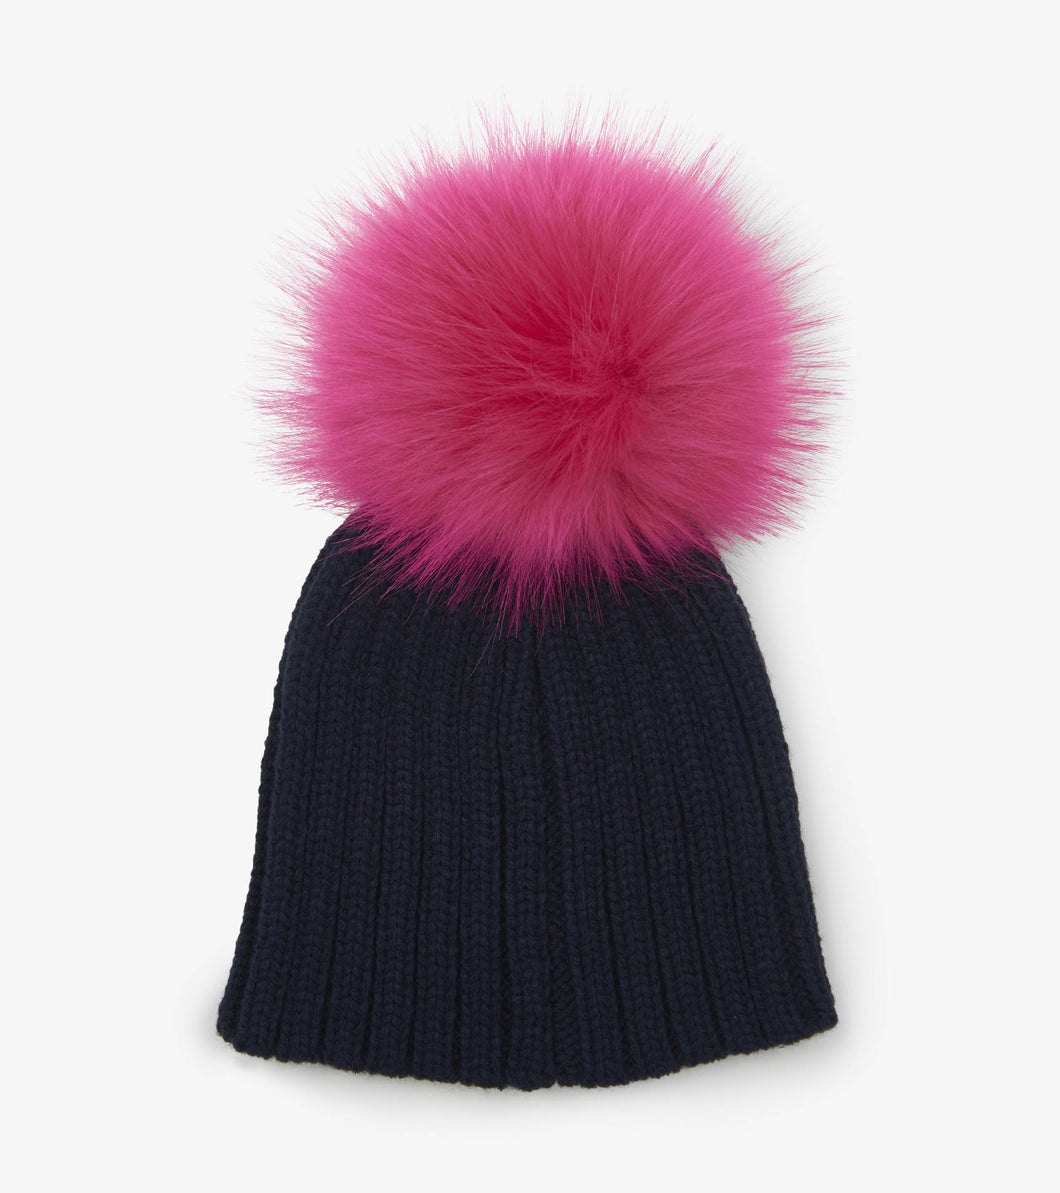 Pink Pom Pom Winter Hat